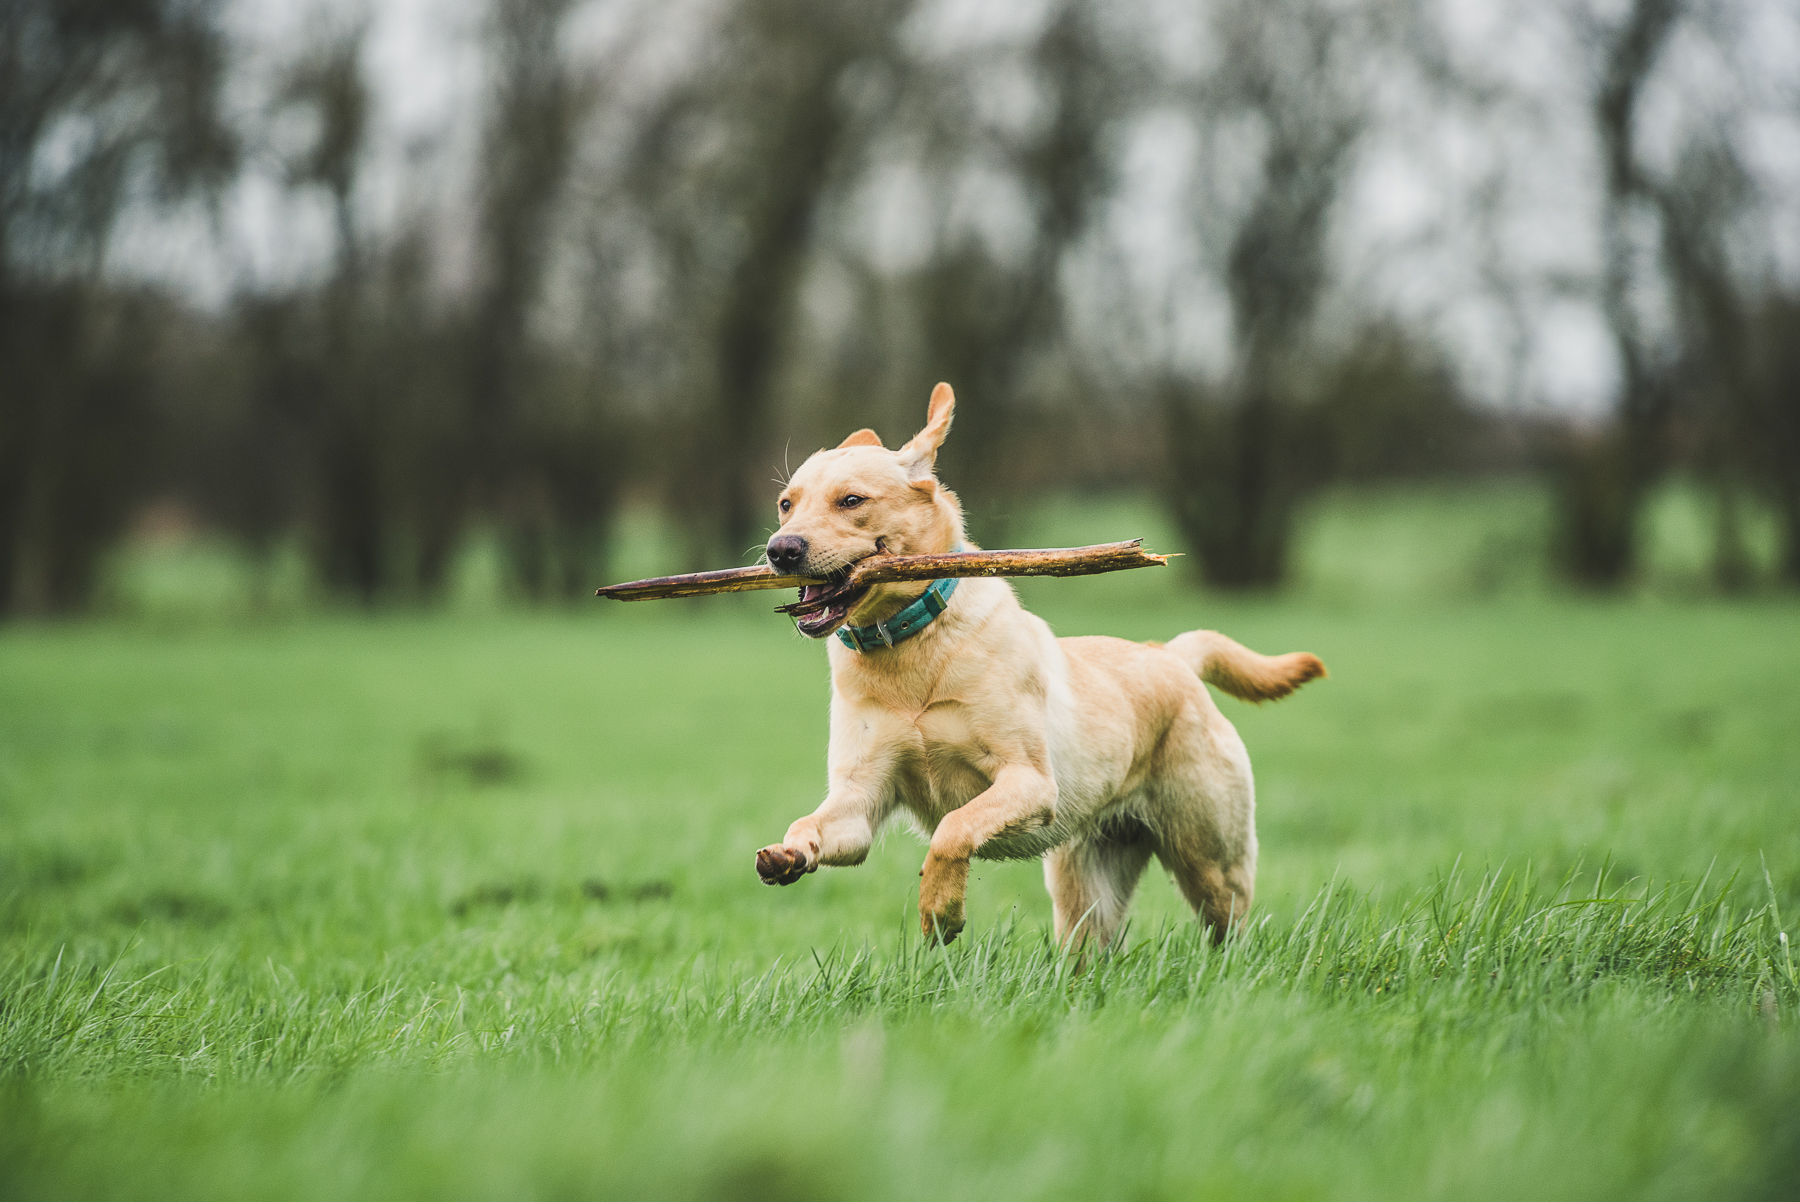 Golden labrador bounding over field with stick